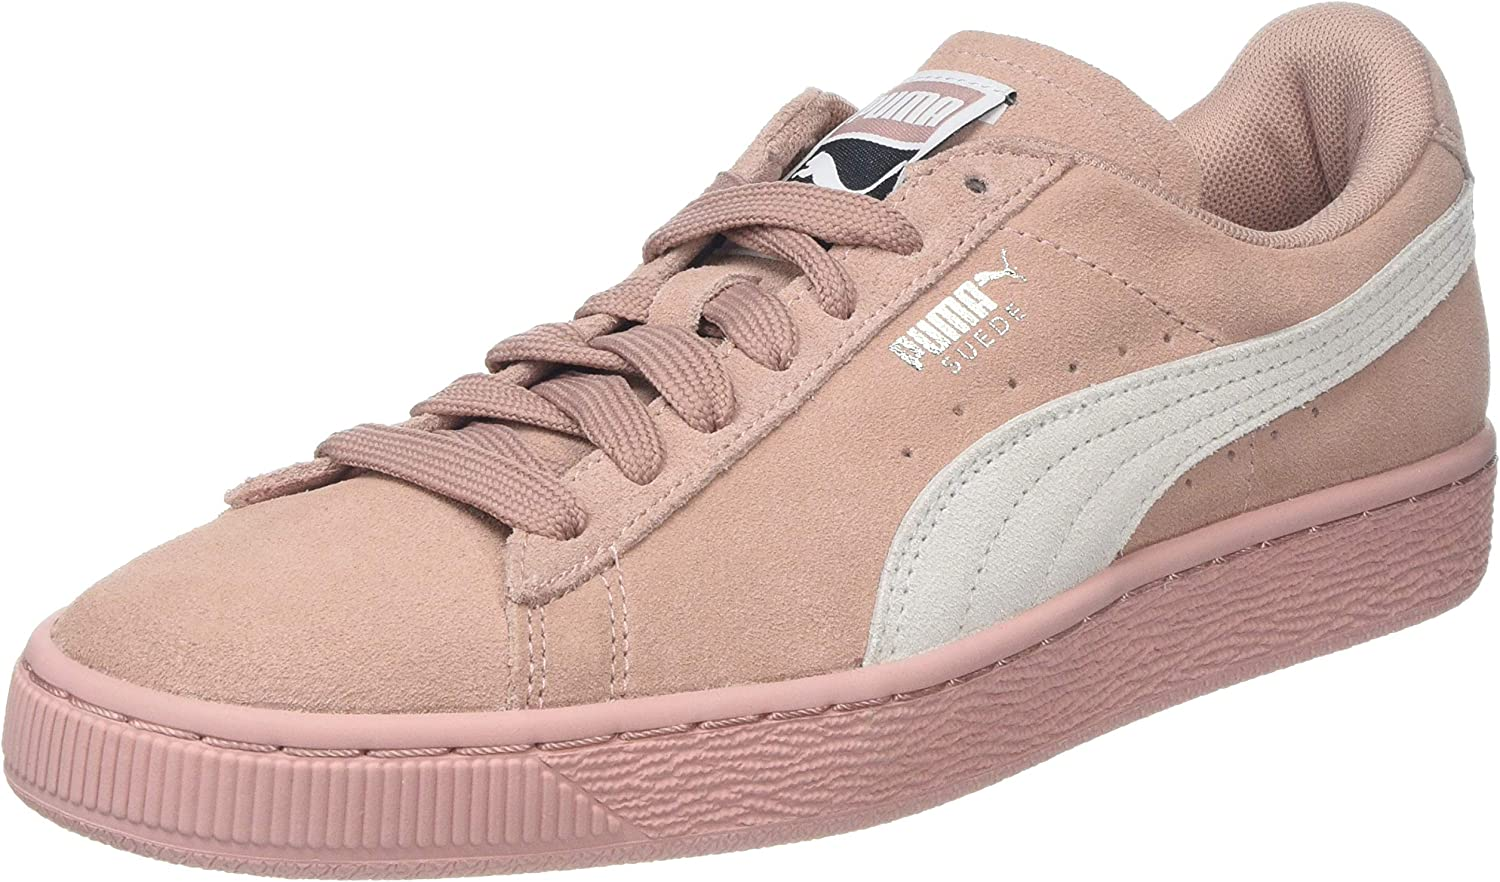 Puma Women's Suede Classic WN's Trainers, Peach Beige-Puma White, 7.5 UK